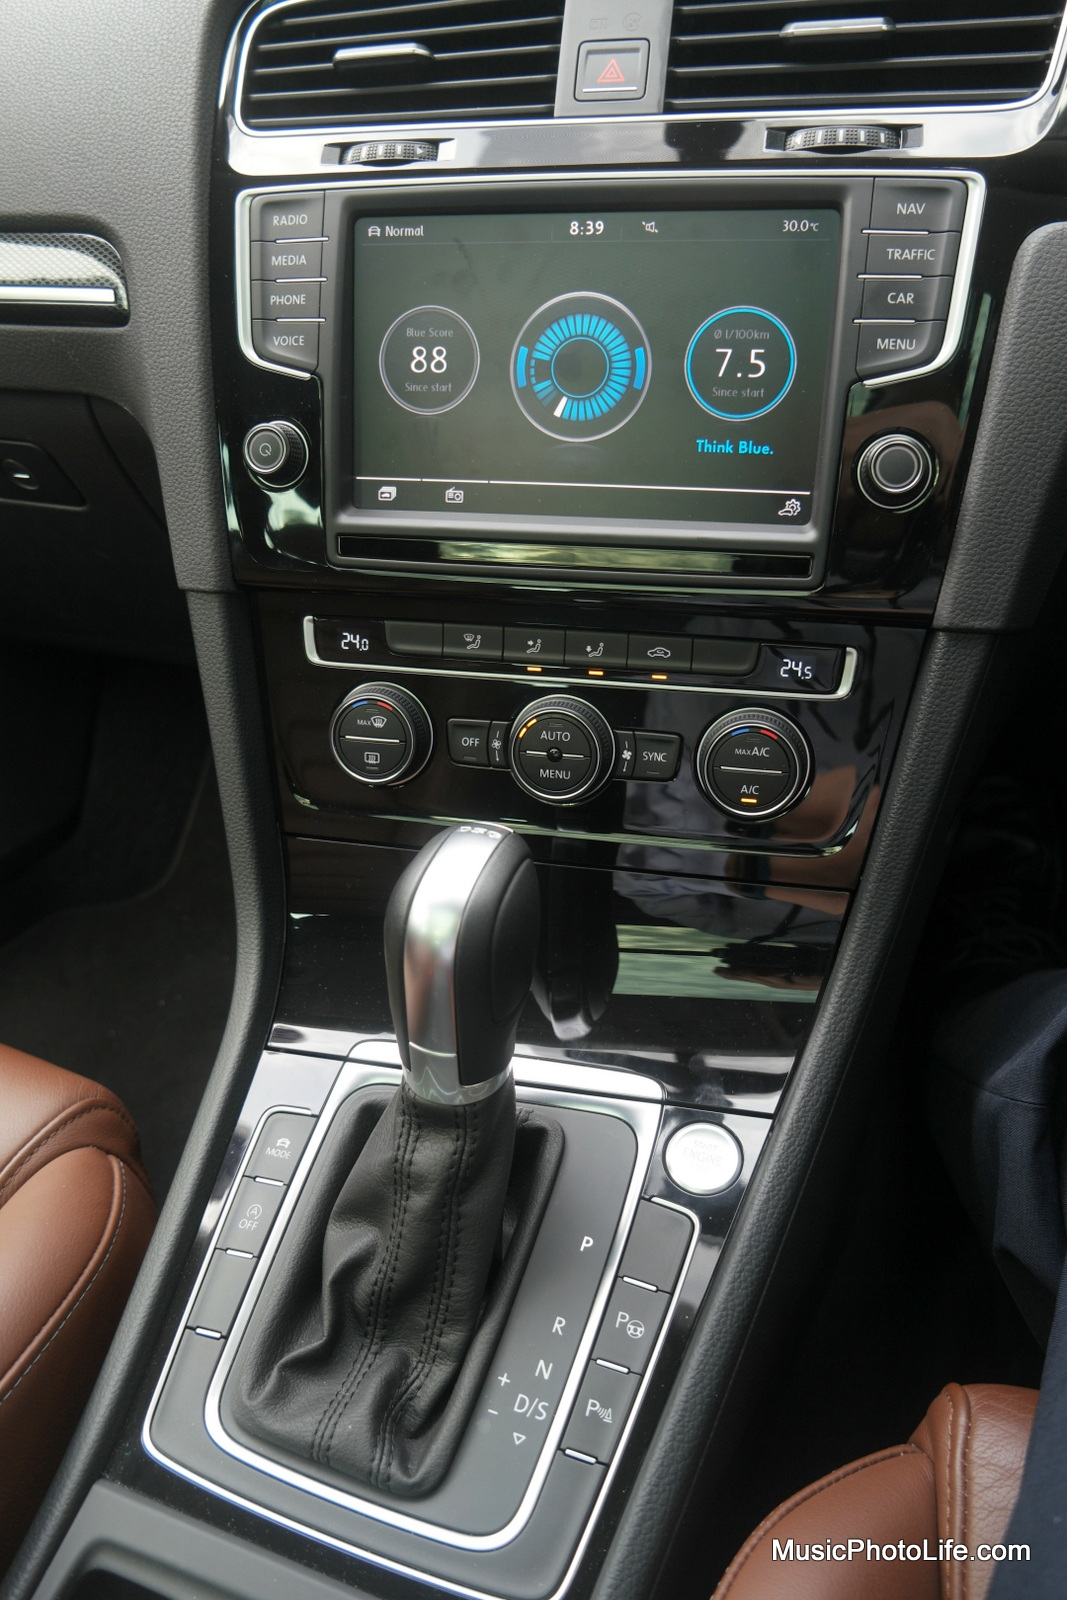 Volkswagen Golf Variant centre console infotainment system - review by musicphotolife.com